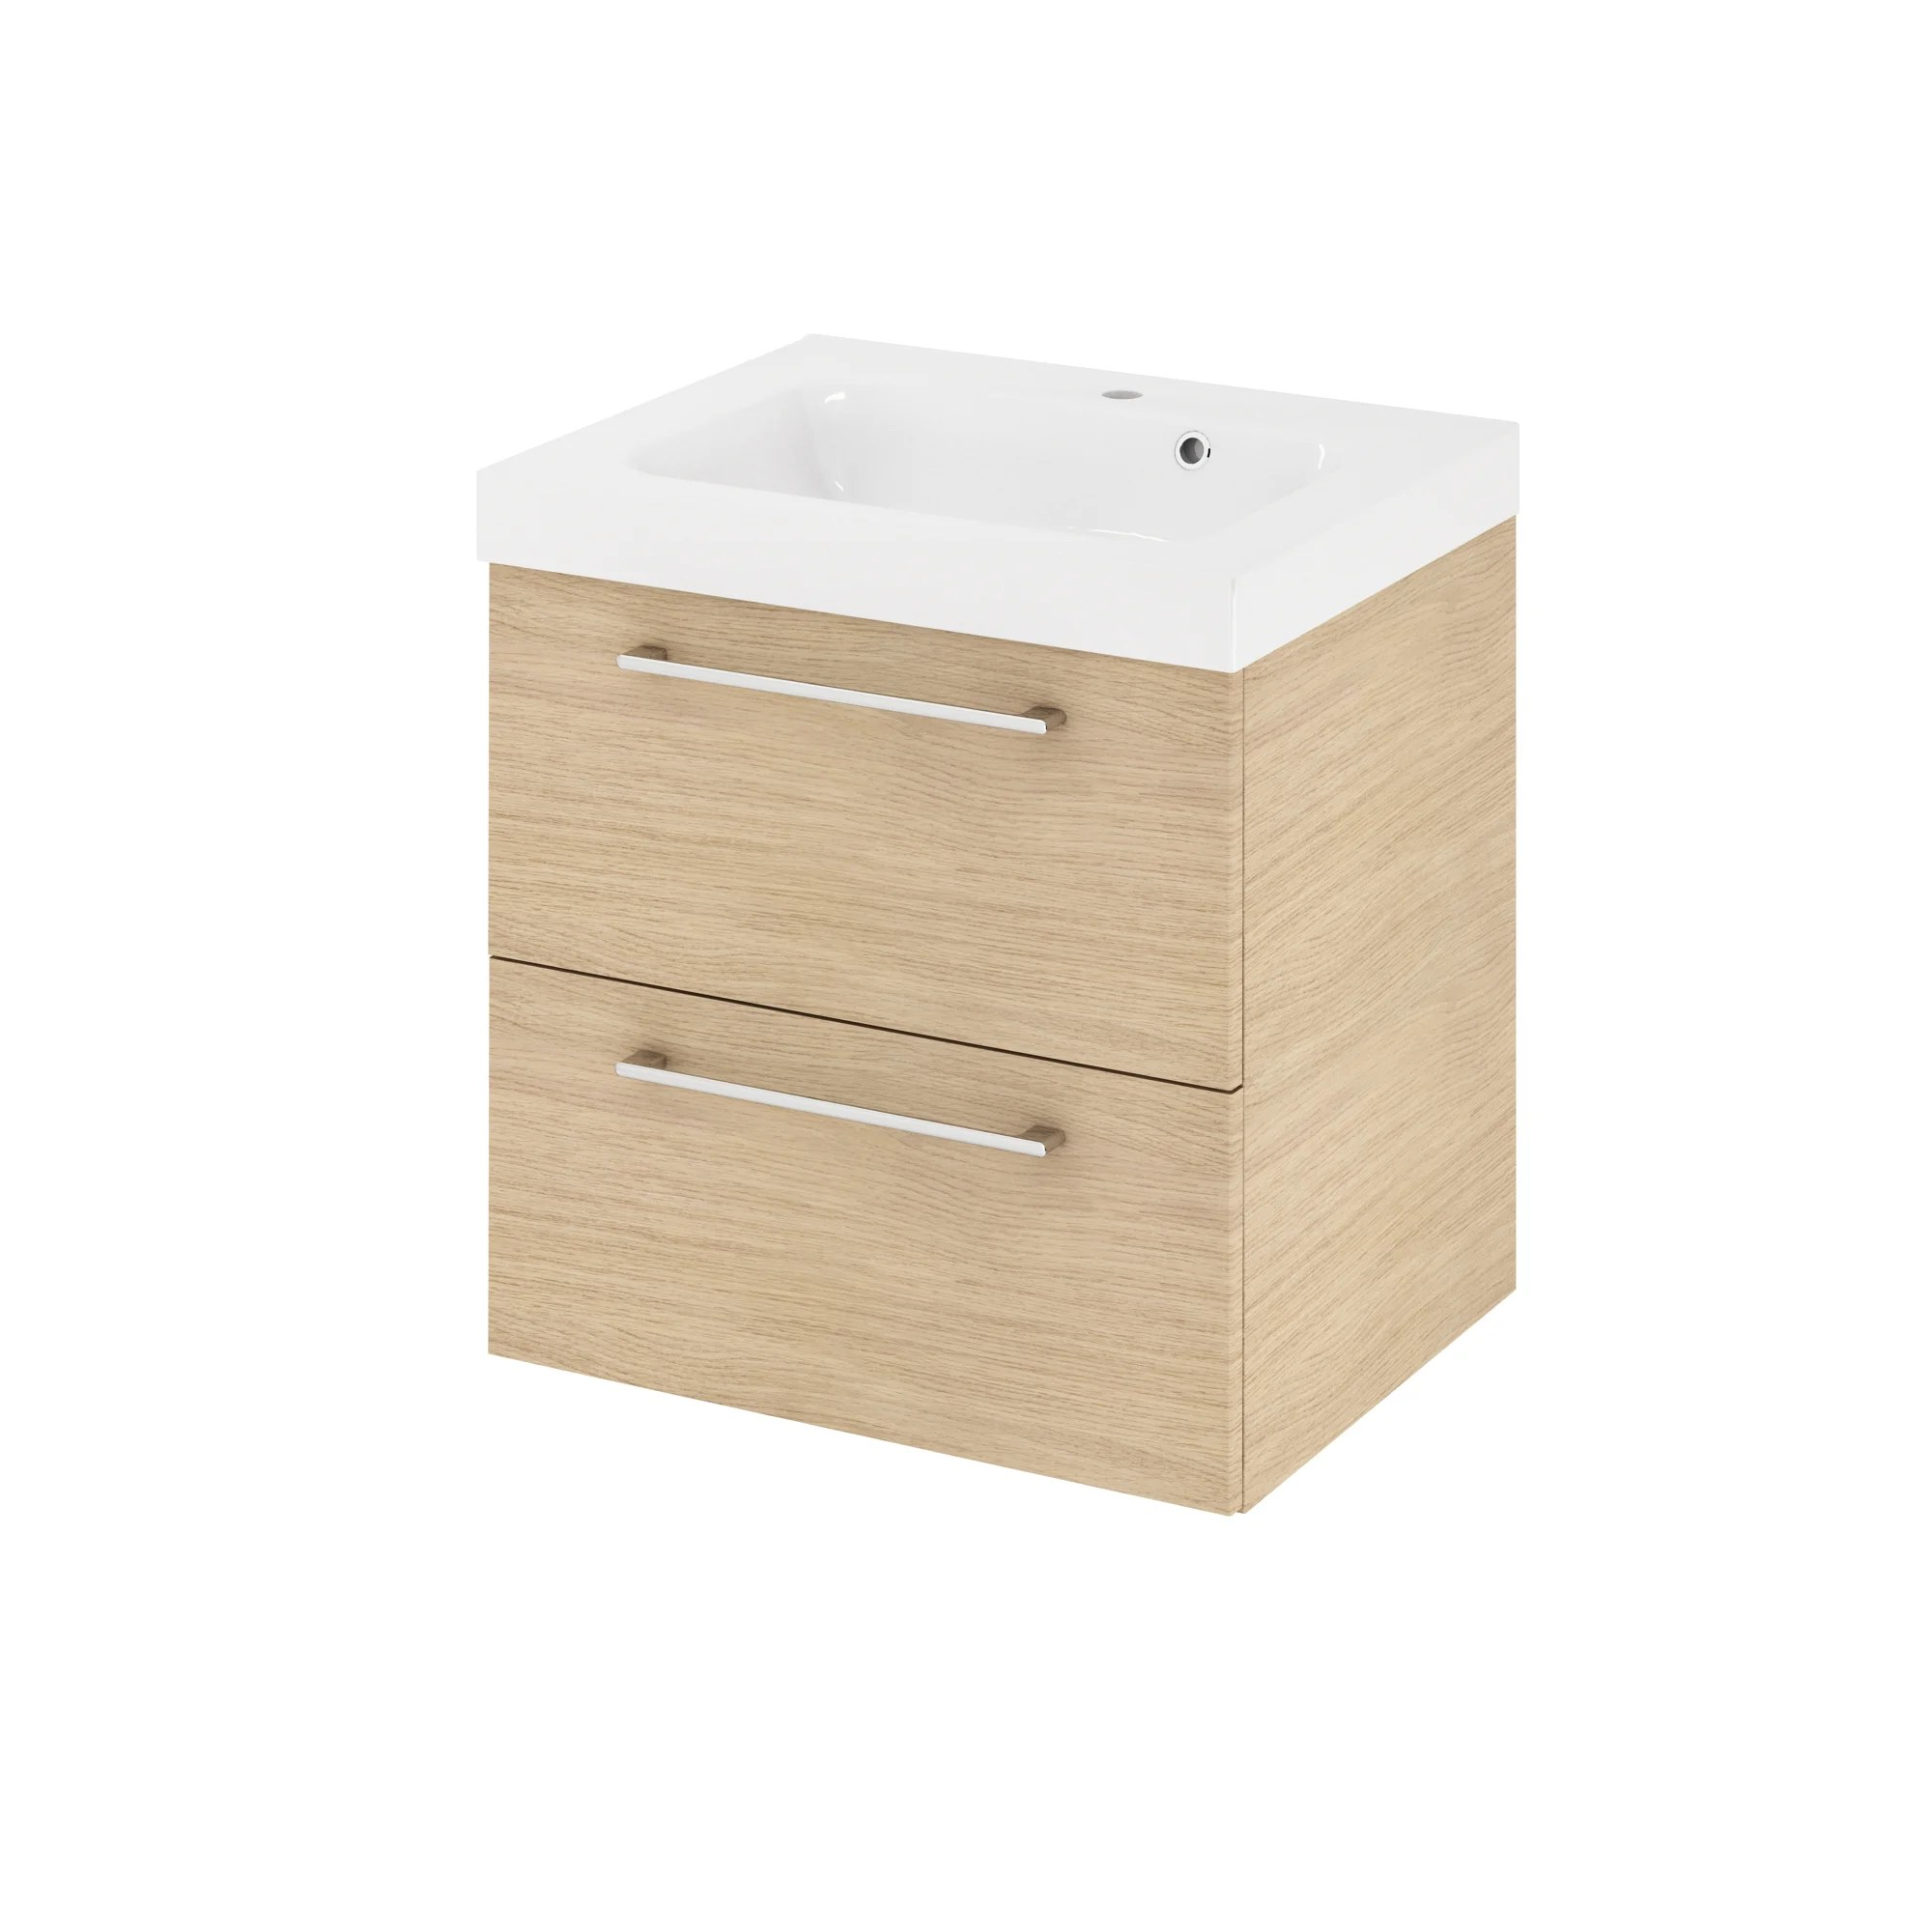 Meuble Simple Vasque L 60 X H 58 X P 46 Cm Effet Chene Naturel Remix Leroy Merlin